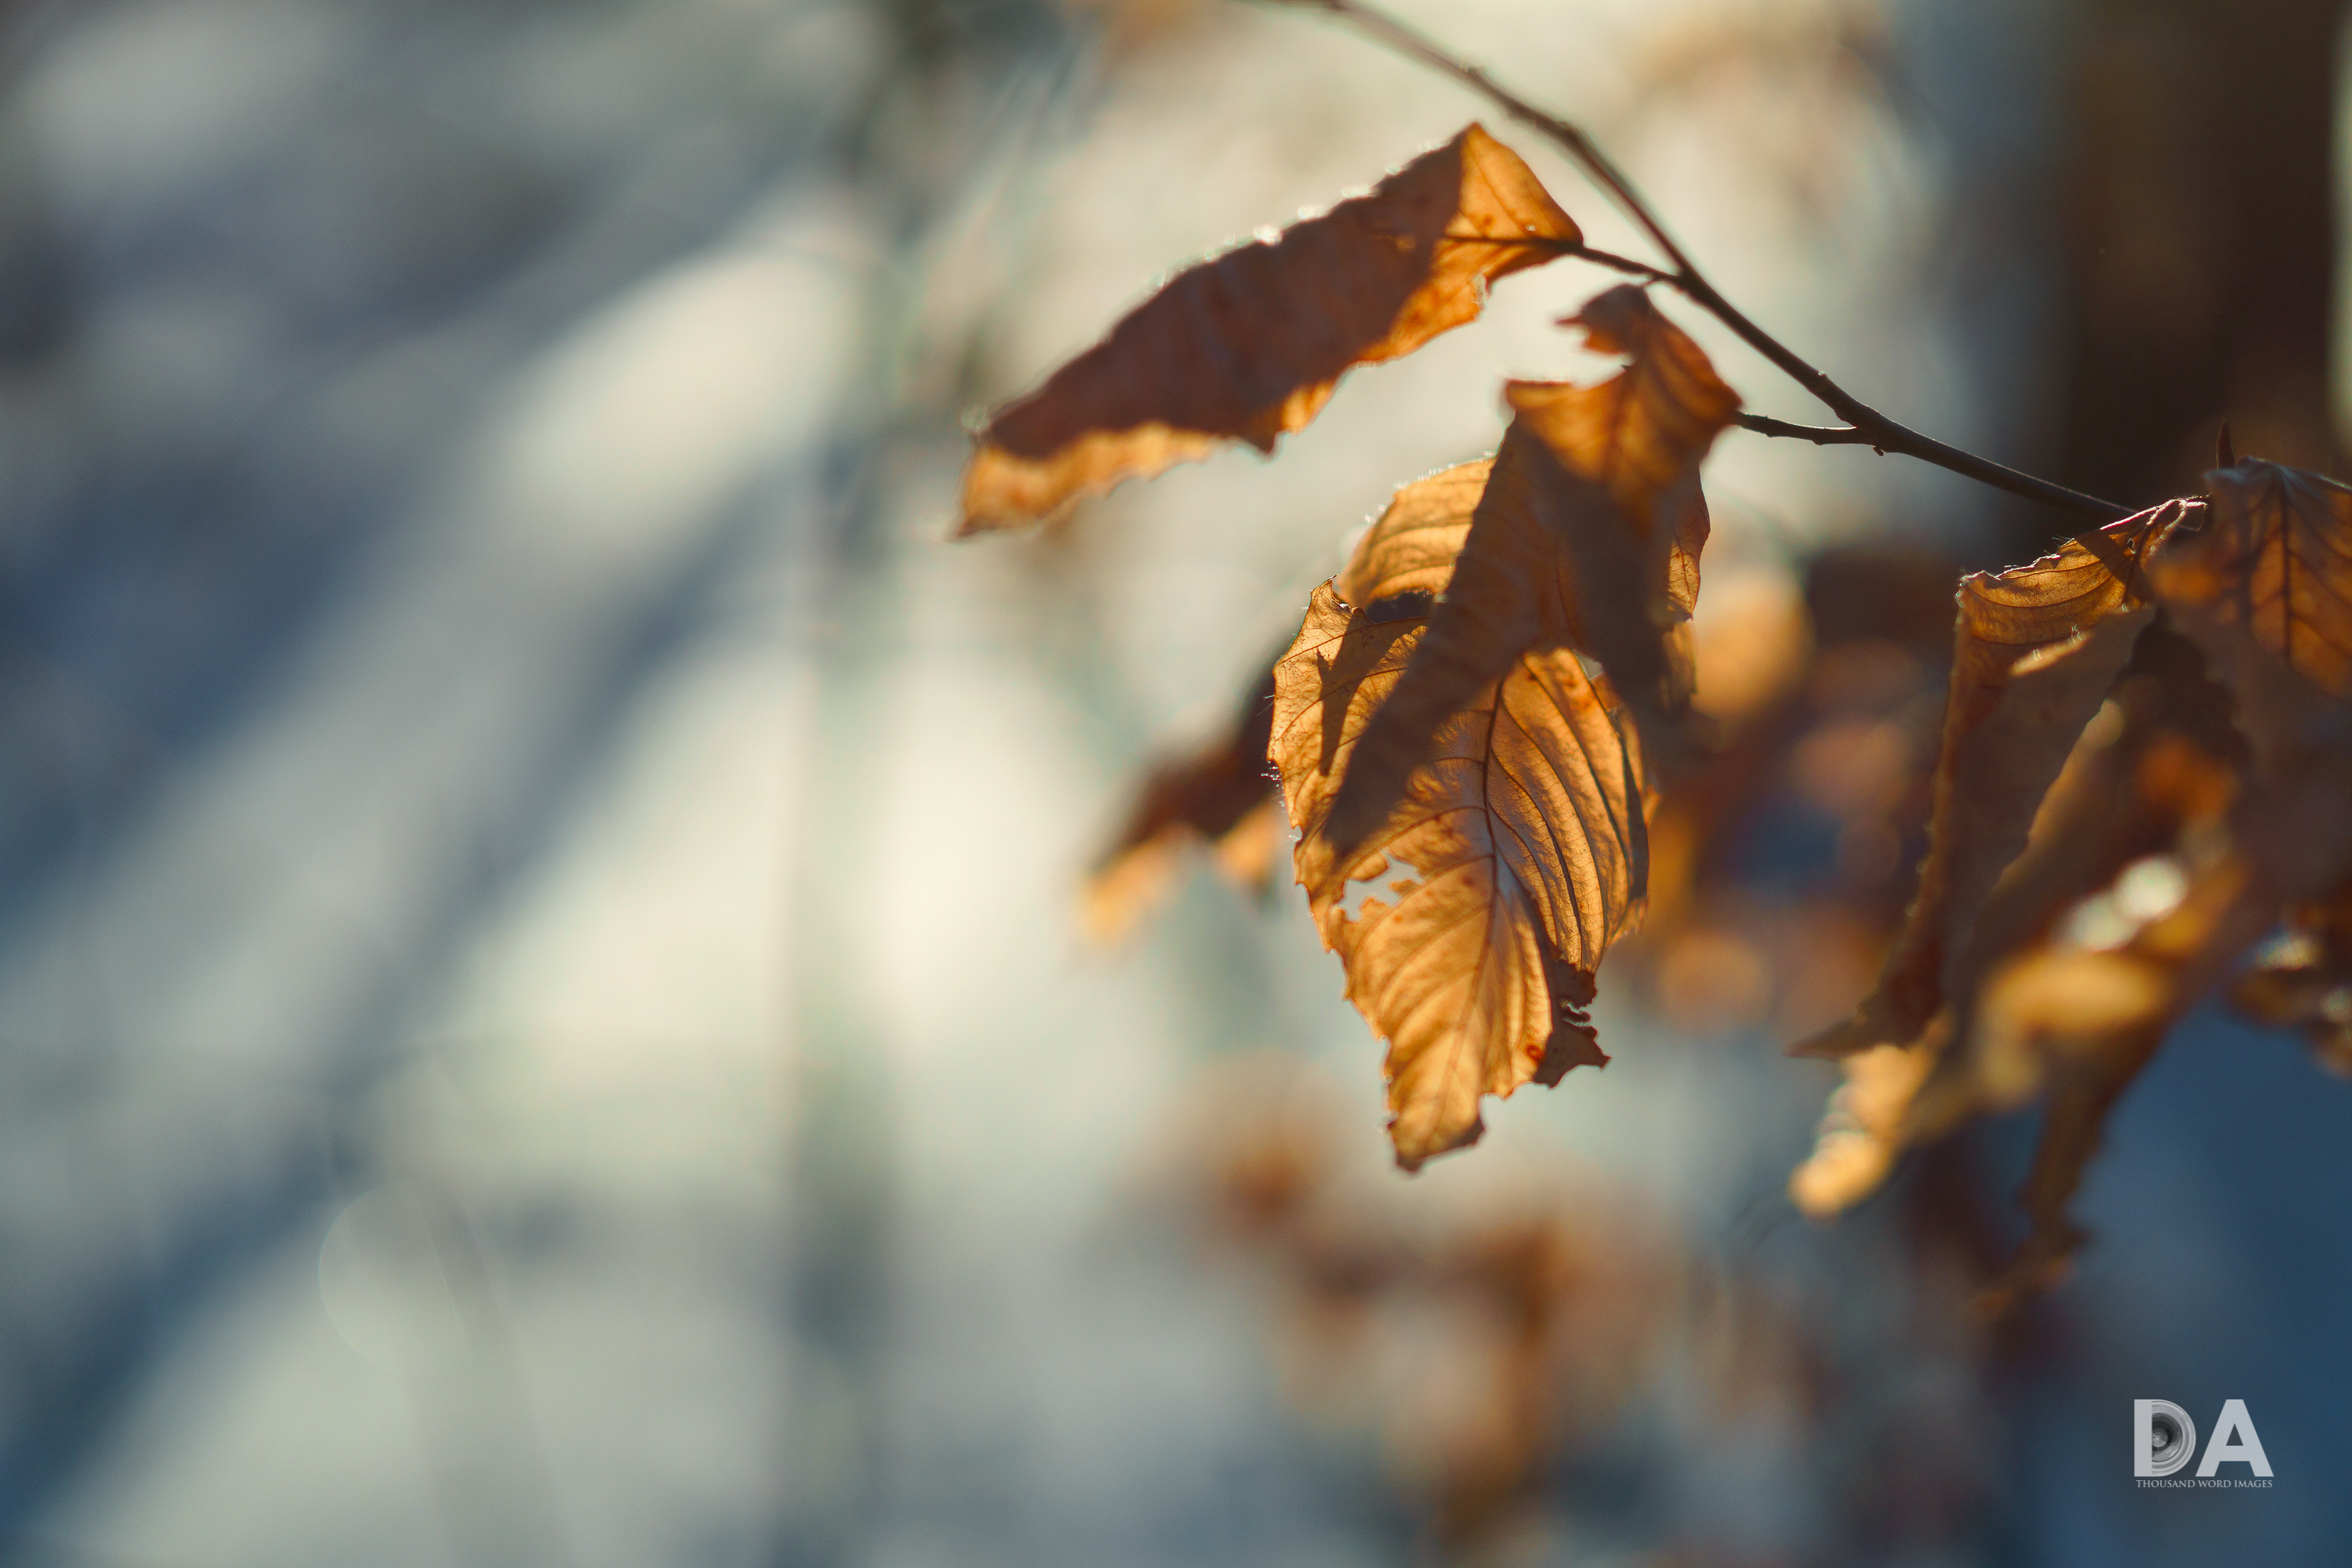 Warm Leaves in a Cold Winter